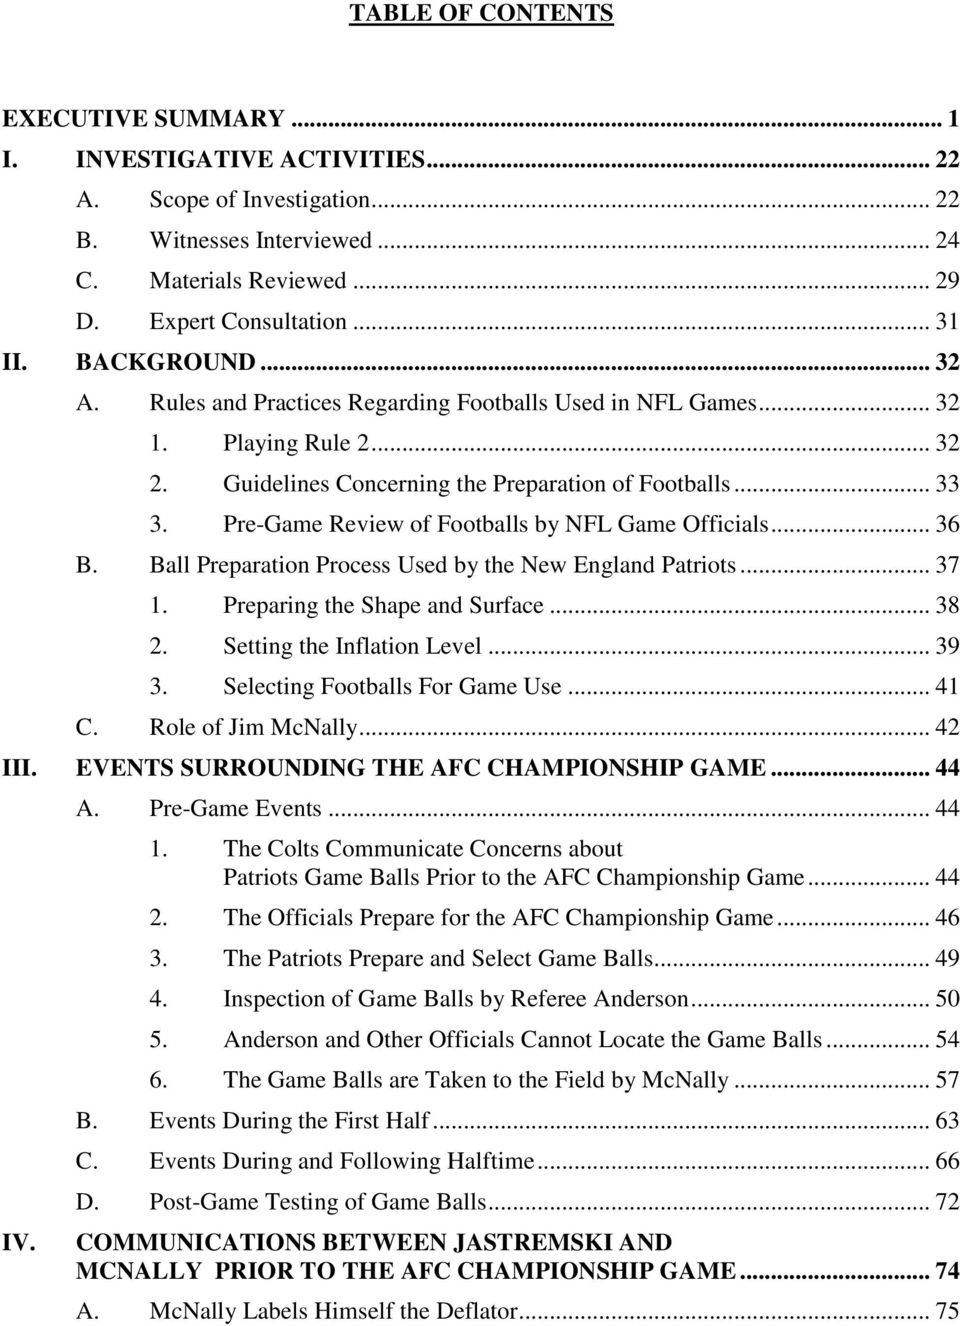 Pre-Game Review of Footballs by NFL Game Officials... 36 B. Ball Preparation Process Used by the New England Patriots... 37 1. Preparing the Shape and Surface... 38 2. Setting the Inflation Level.